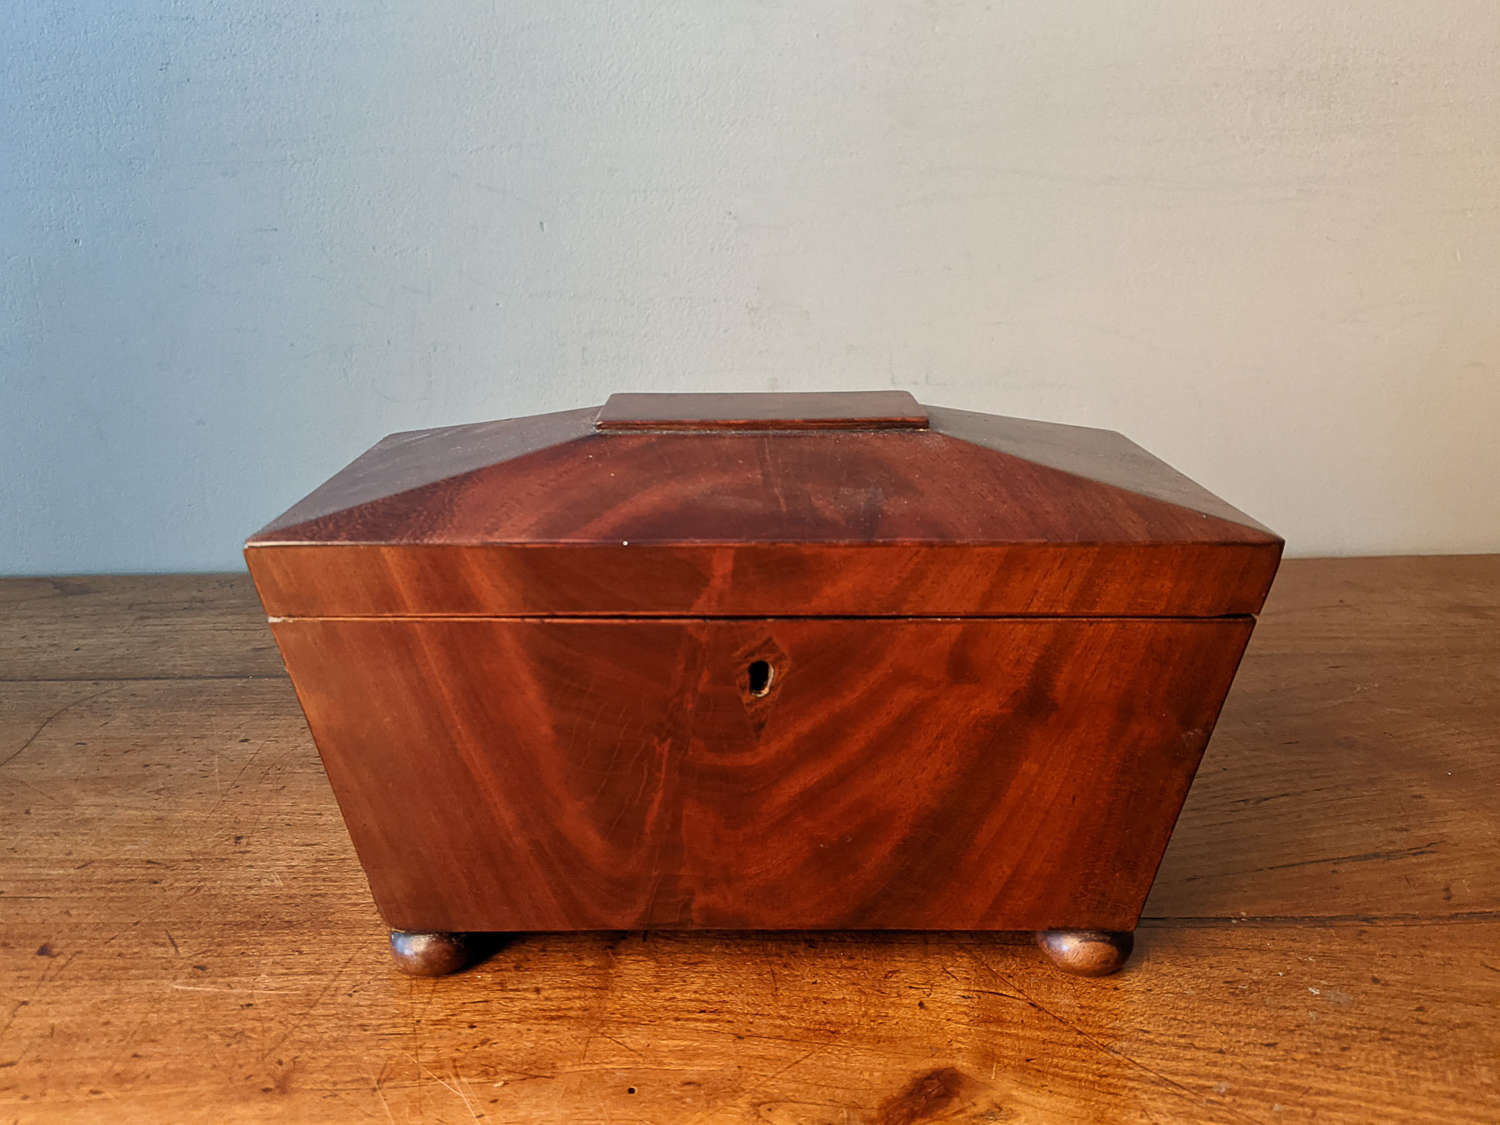 C1820 A Regency Mahogany Sarcophagus Tea Caddy